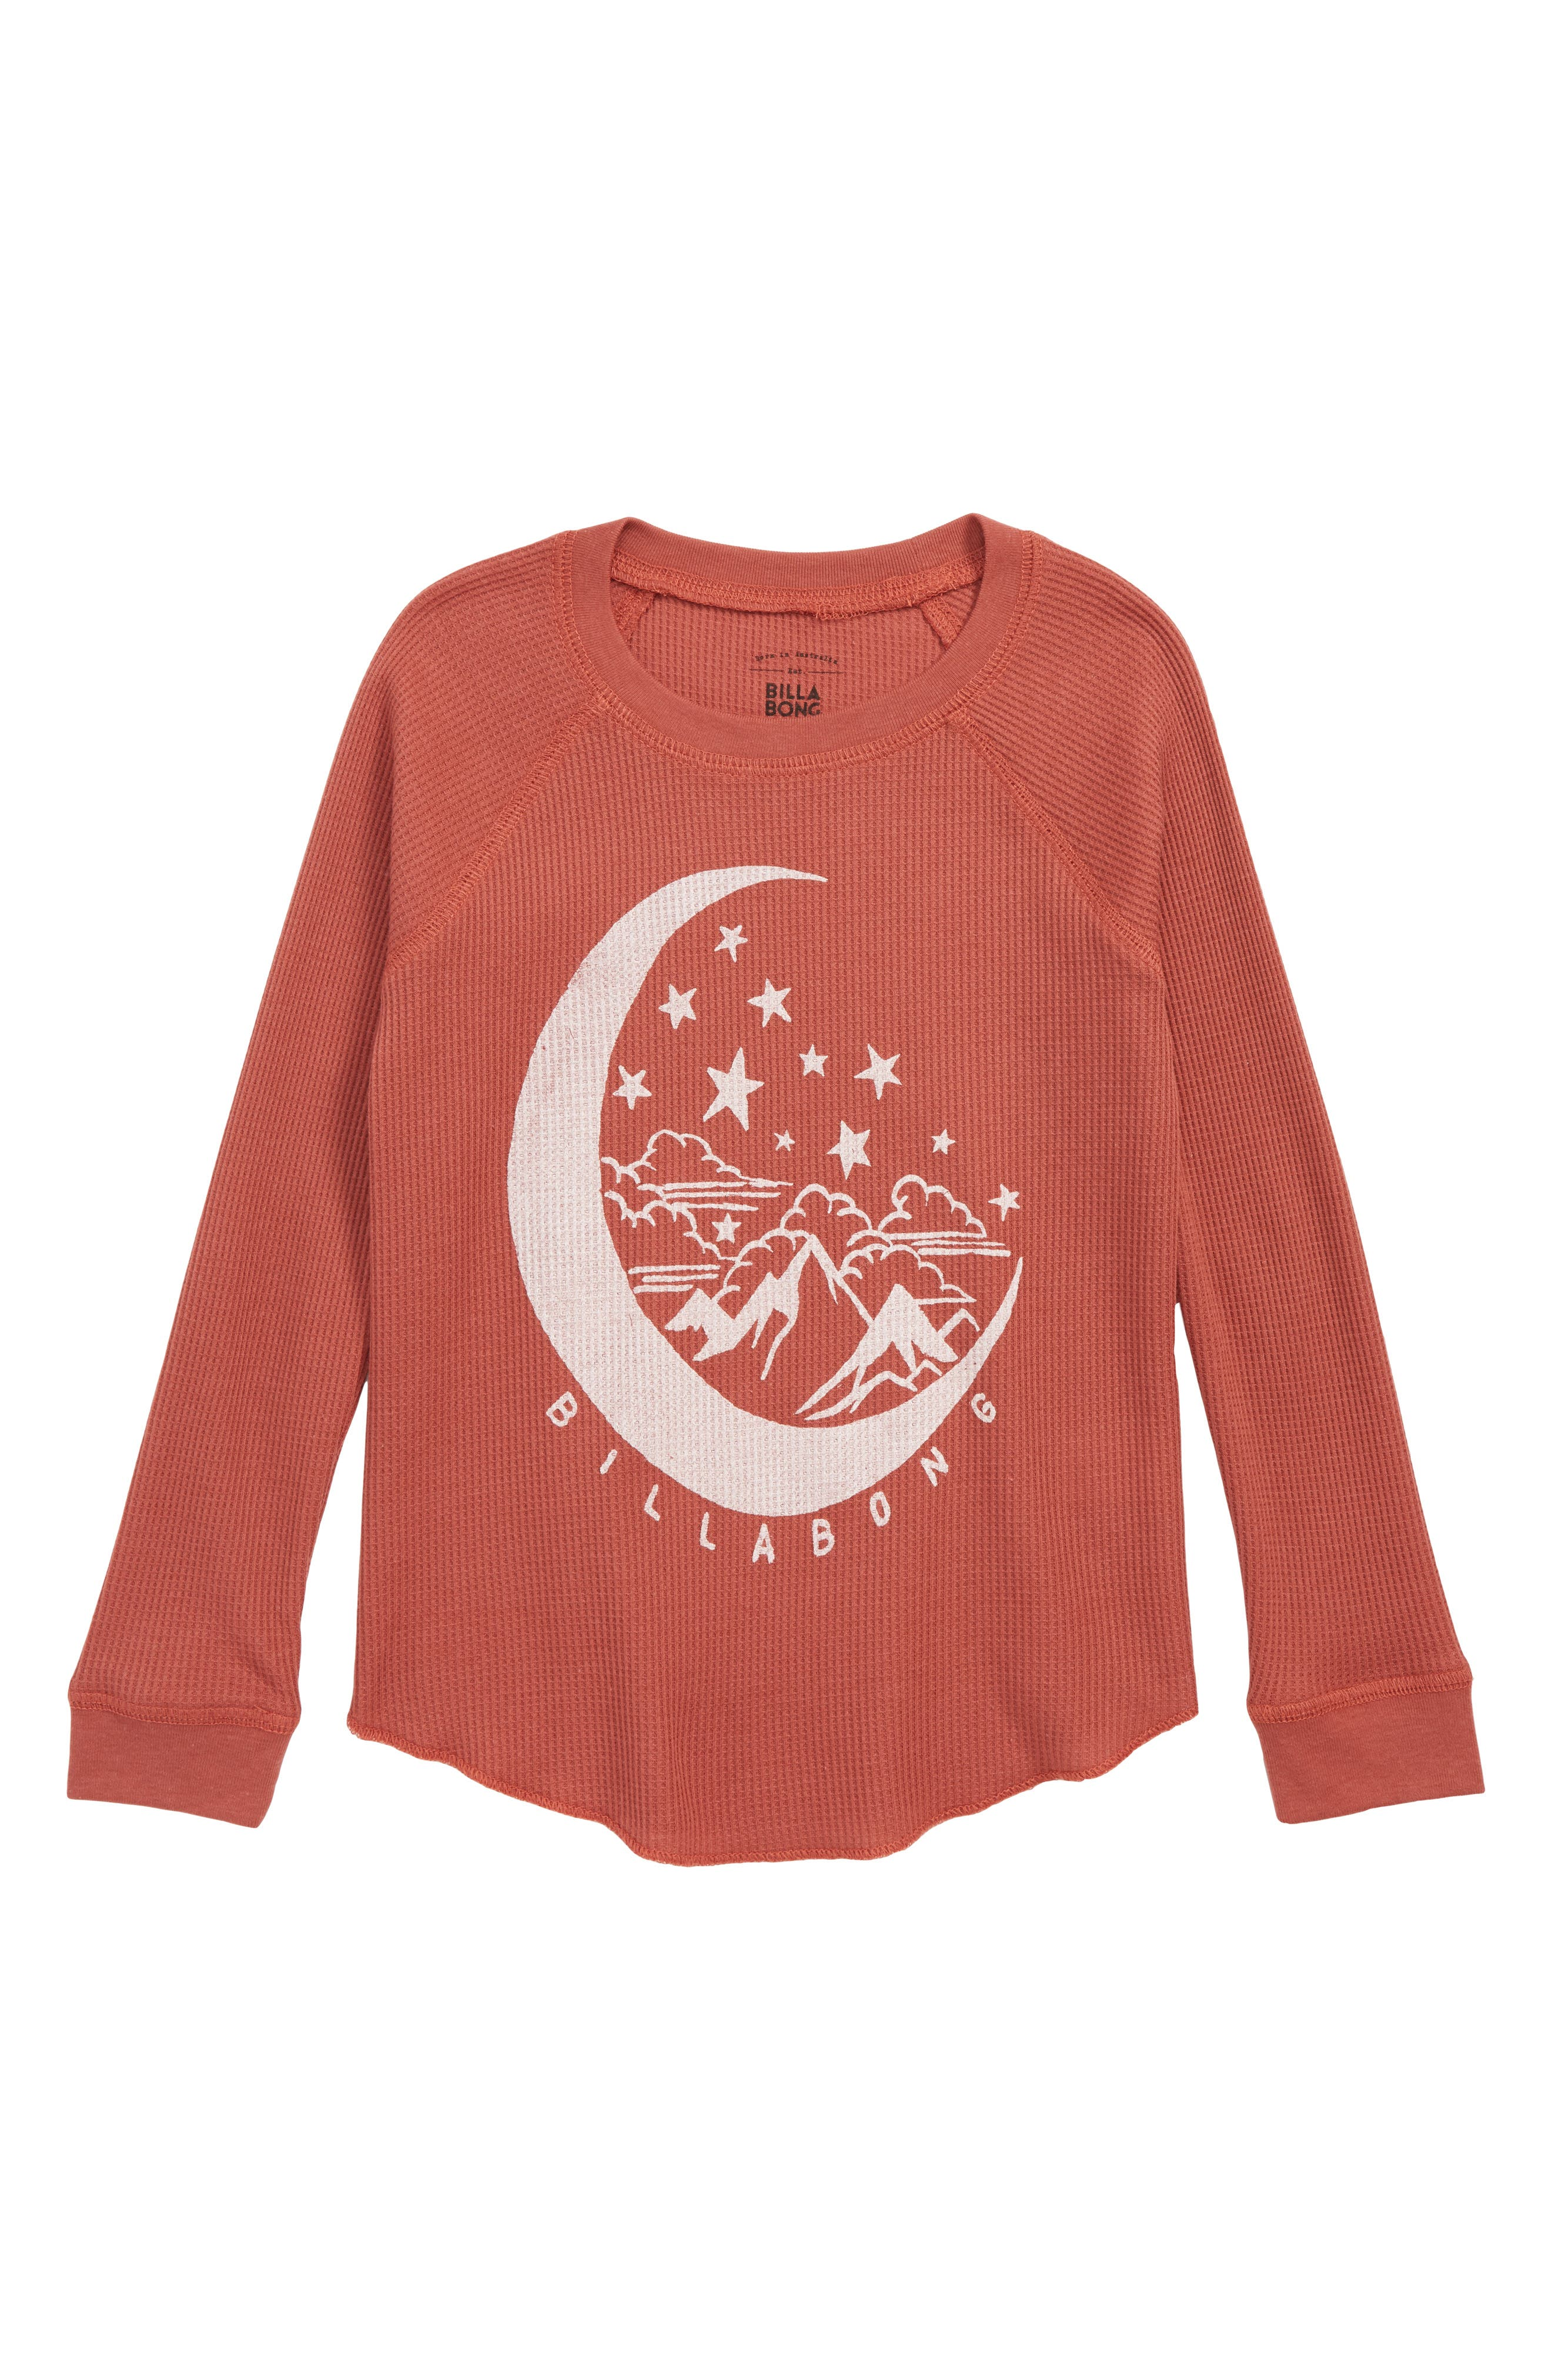 Over the Moon Thermal Tee,                             Main thumbnail 1, color,                             602